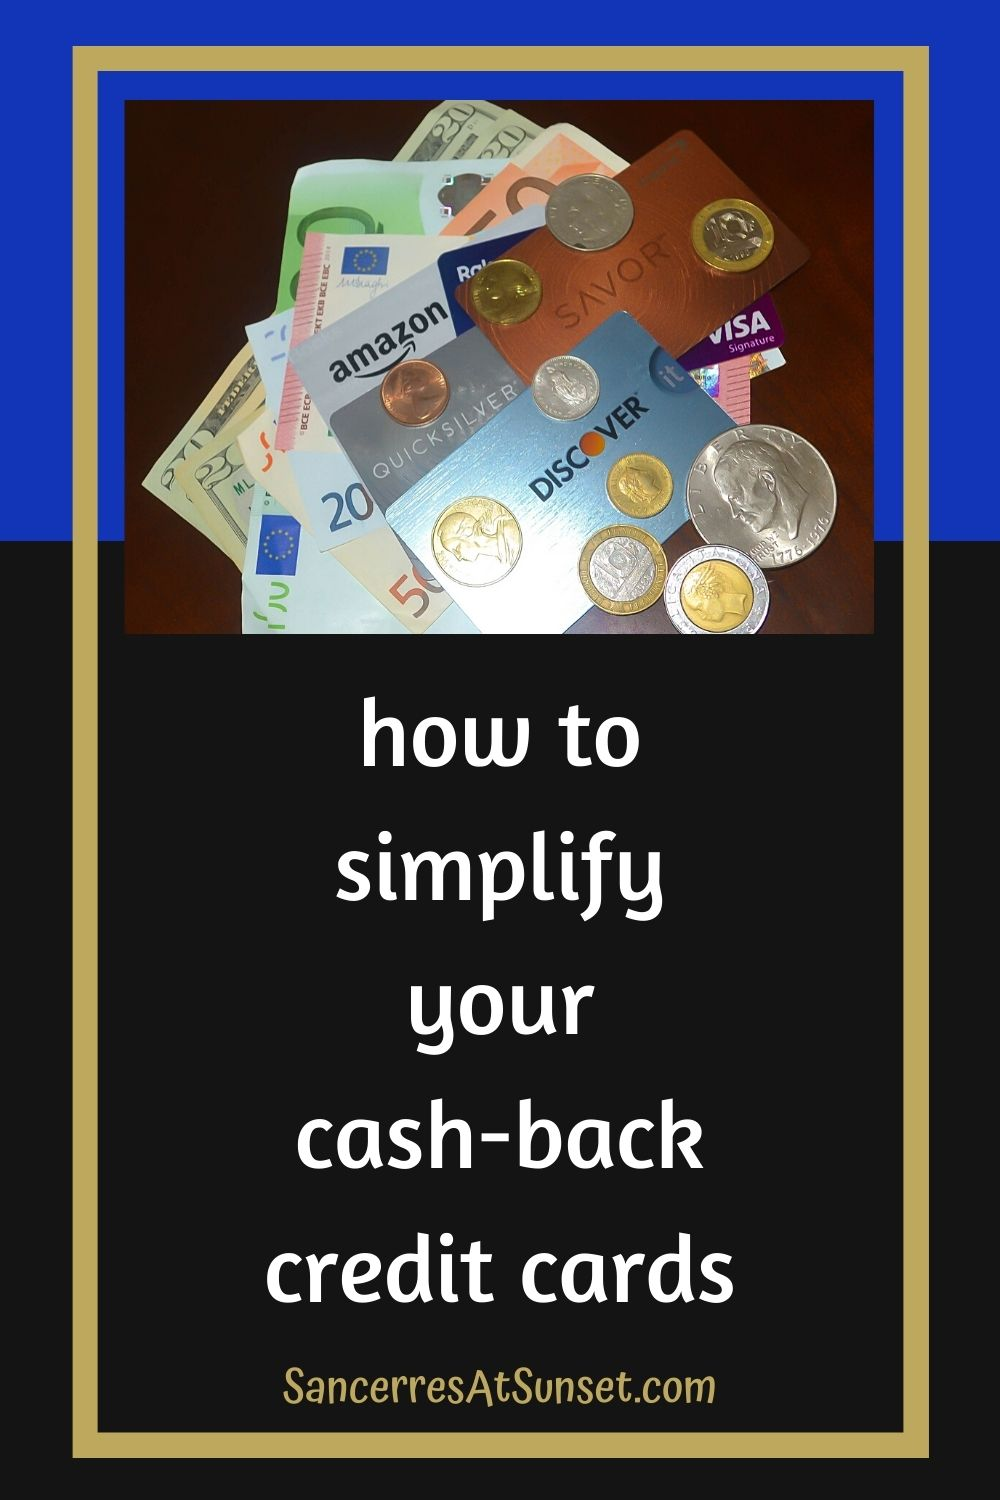 How to Simplify Your Cash-Back Credit Cards